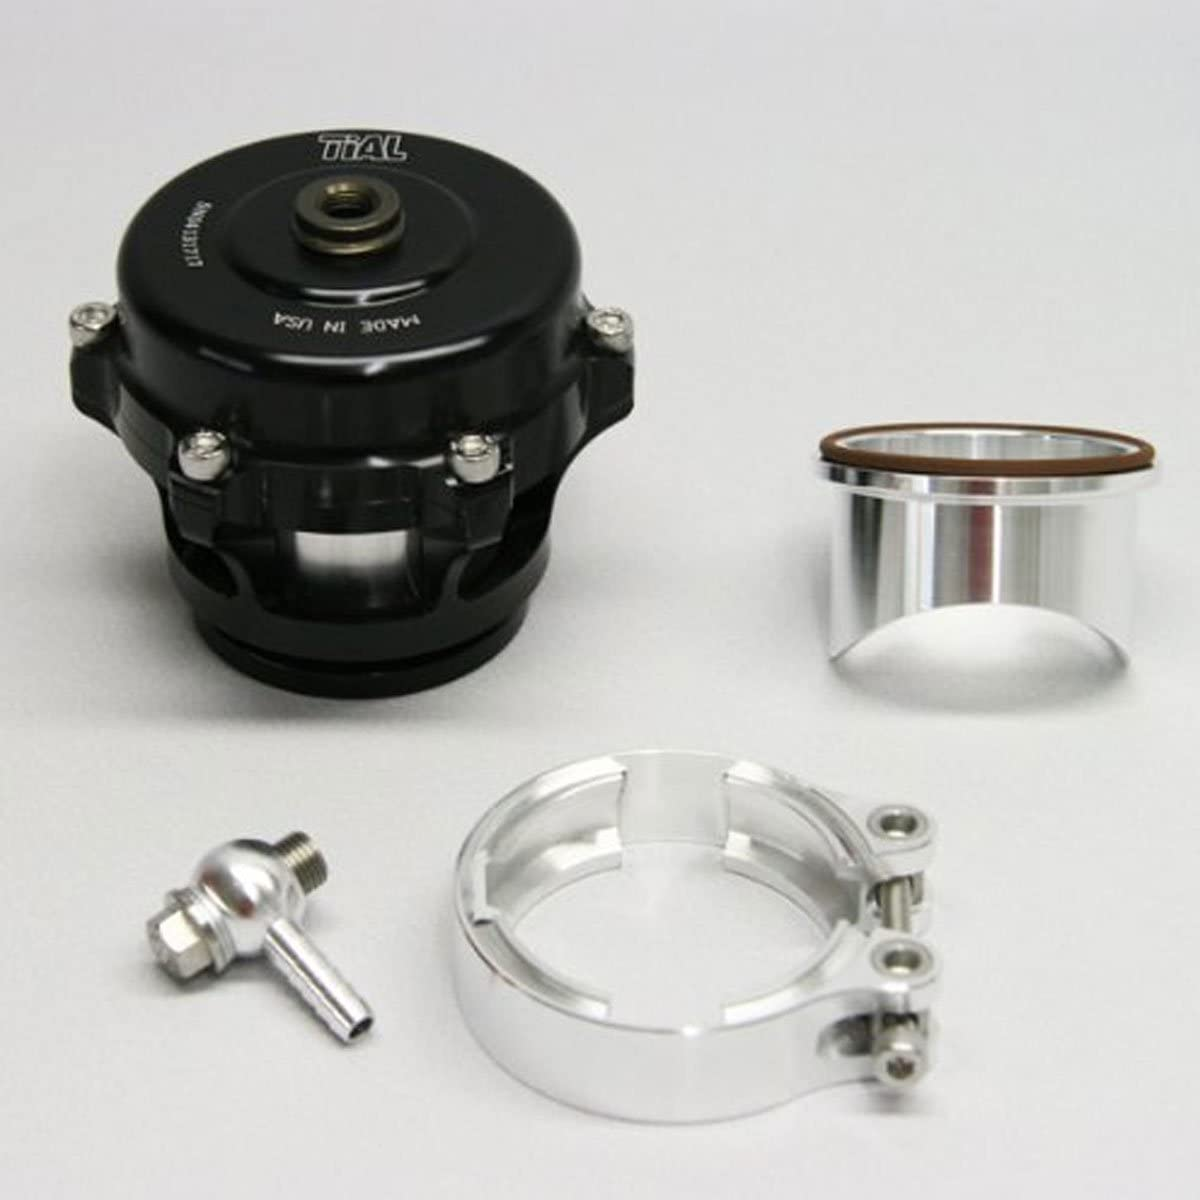 TiAL Q Blow Off OFFicial site Valve - Black spring Body un-painted psi 10 SEAL limited product